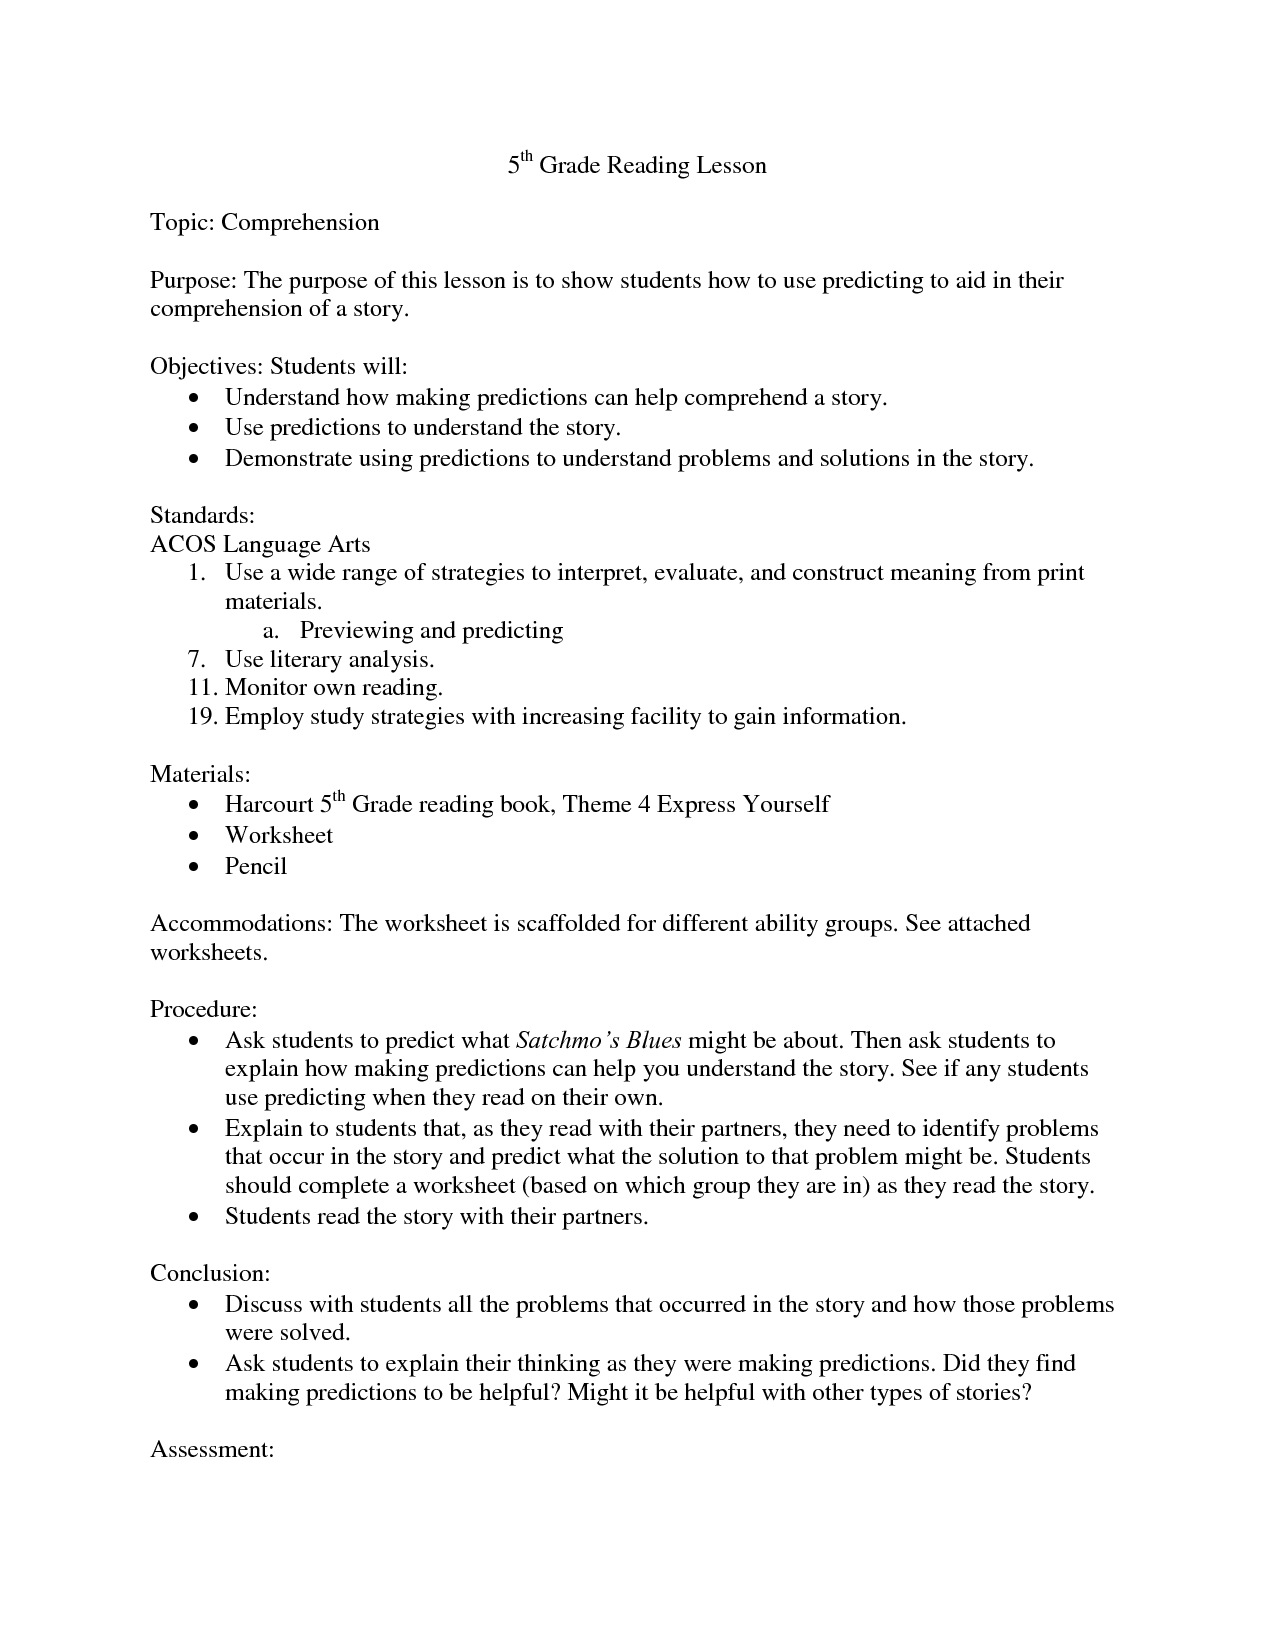 5th Grade English Worksheet Free